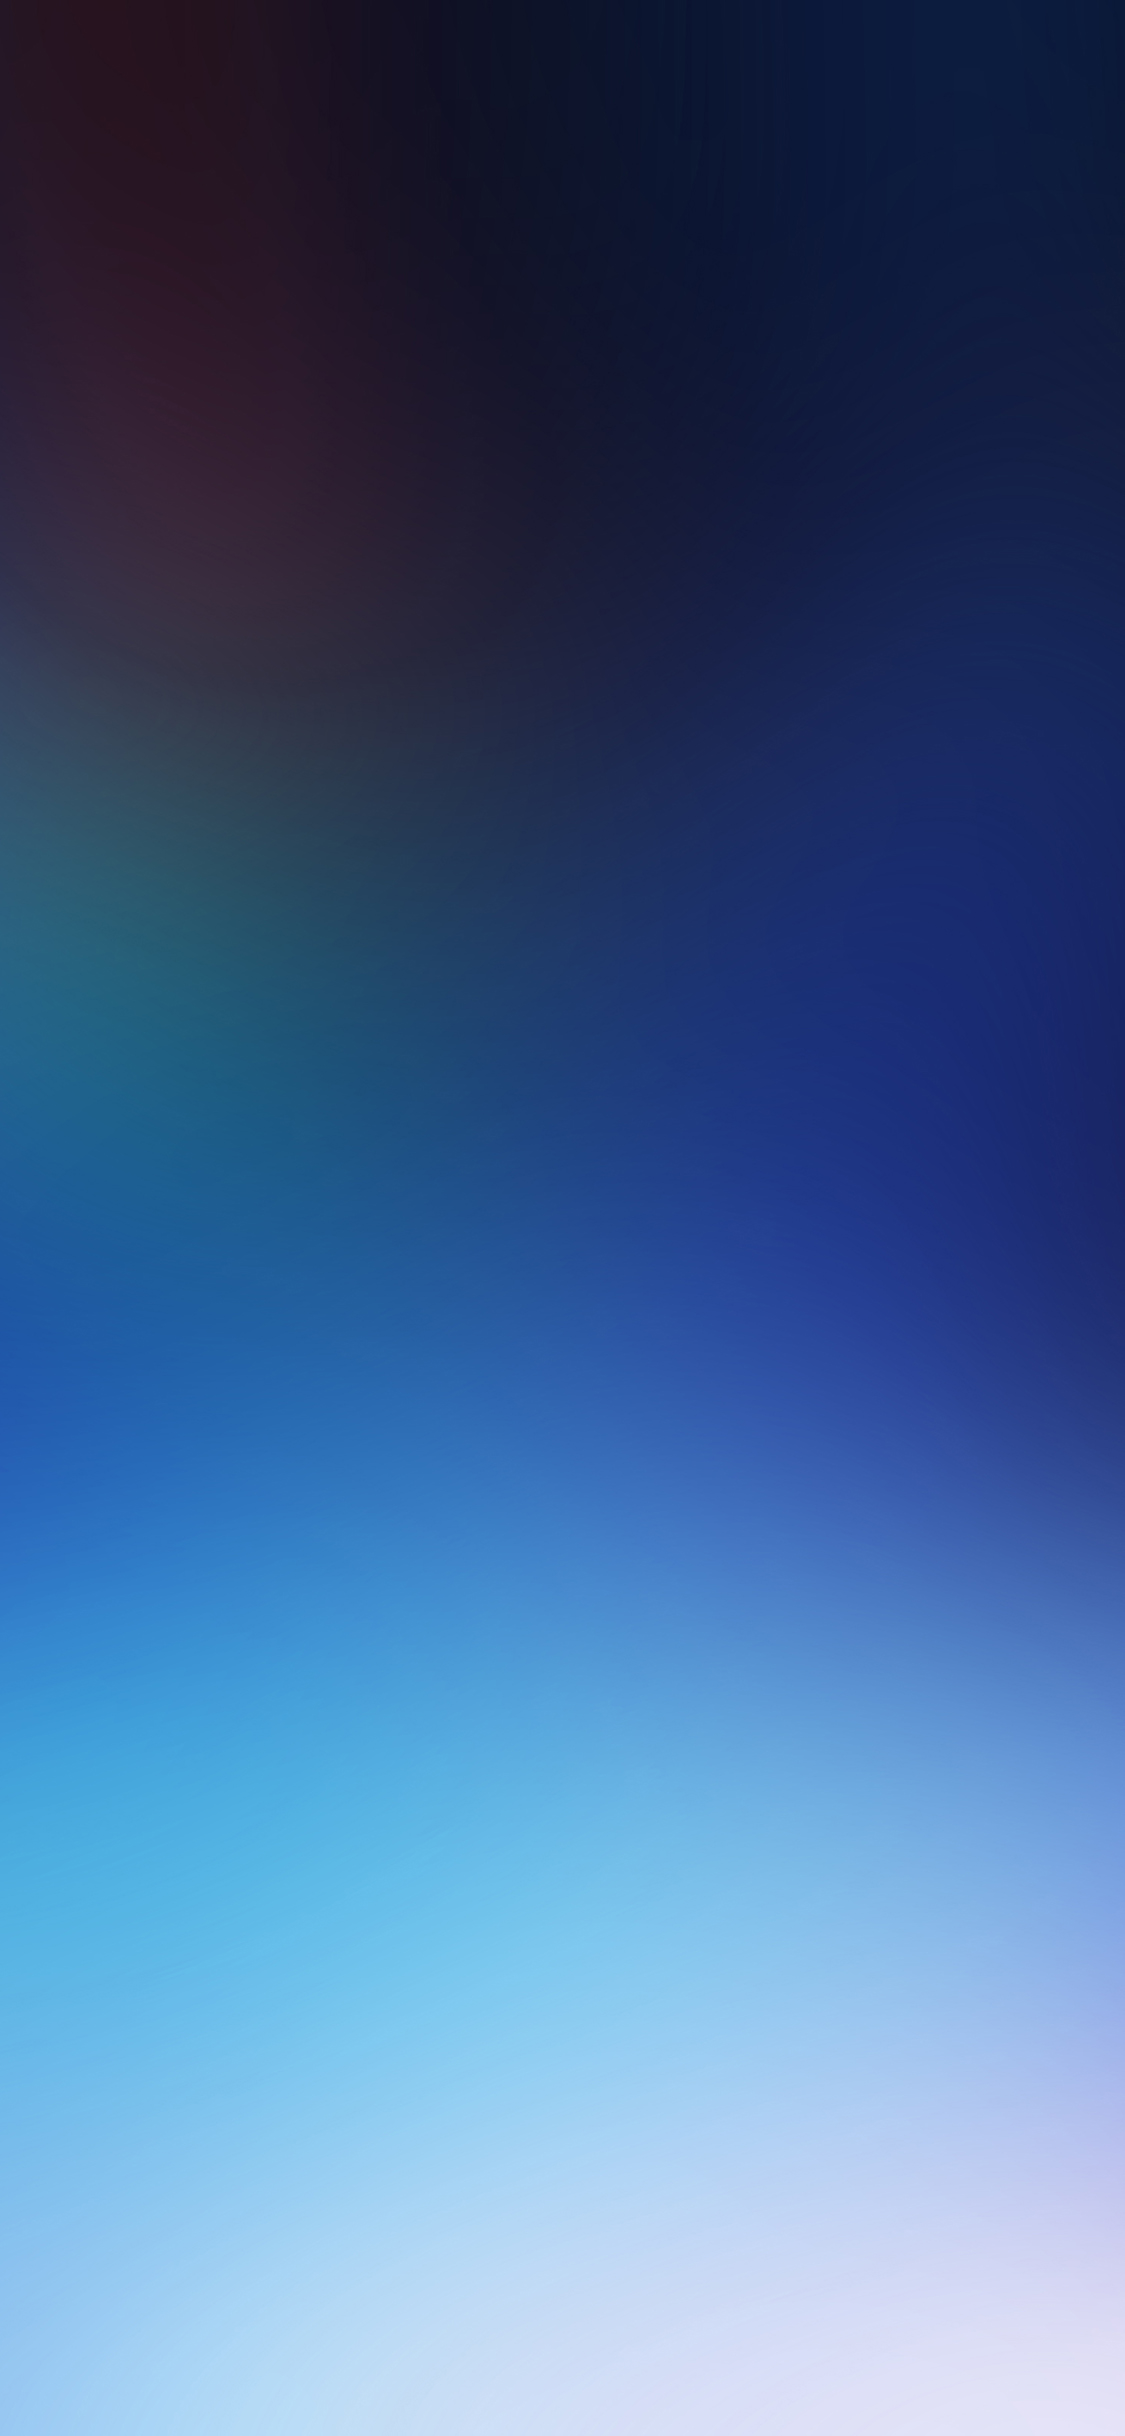 iPhoneXpapers.com-Apple-iPhone-wallpaper-sa83-wallpaper-nature-in-blue-with-blur